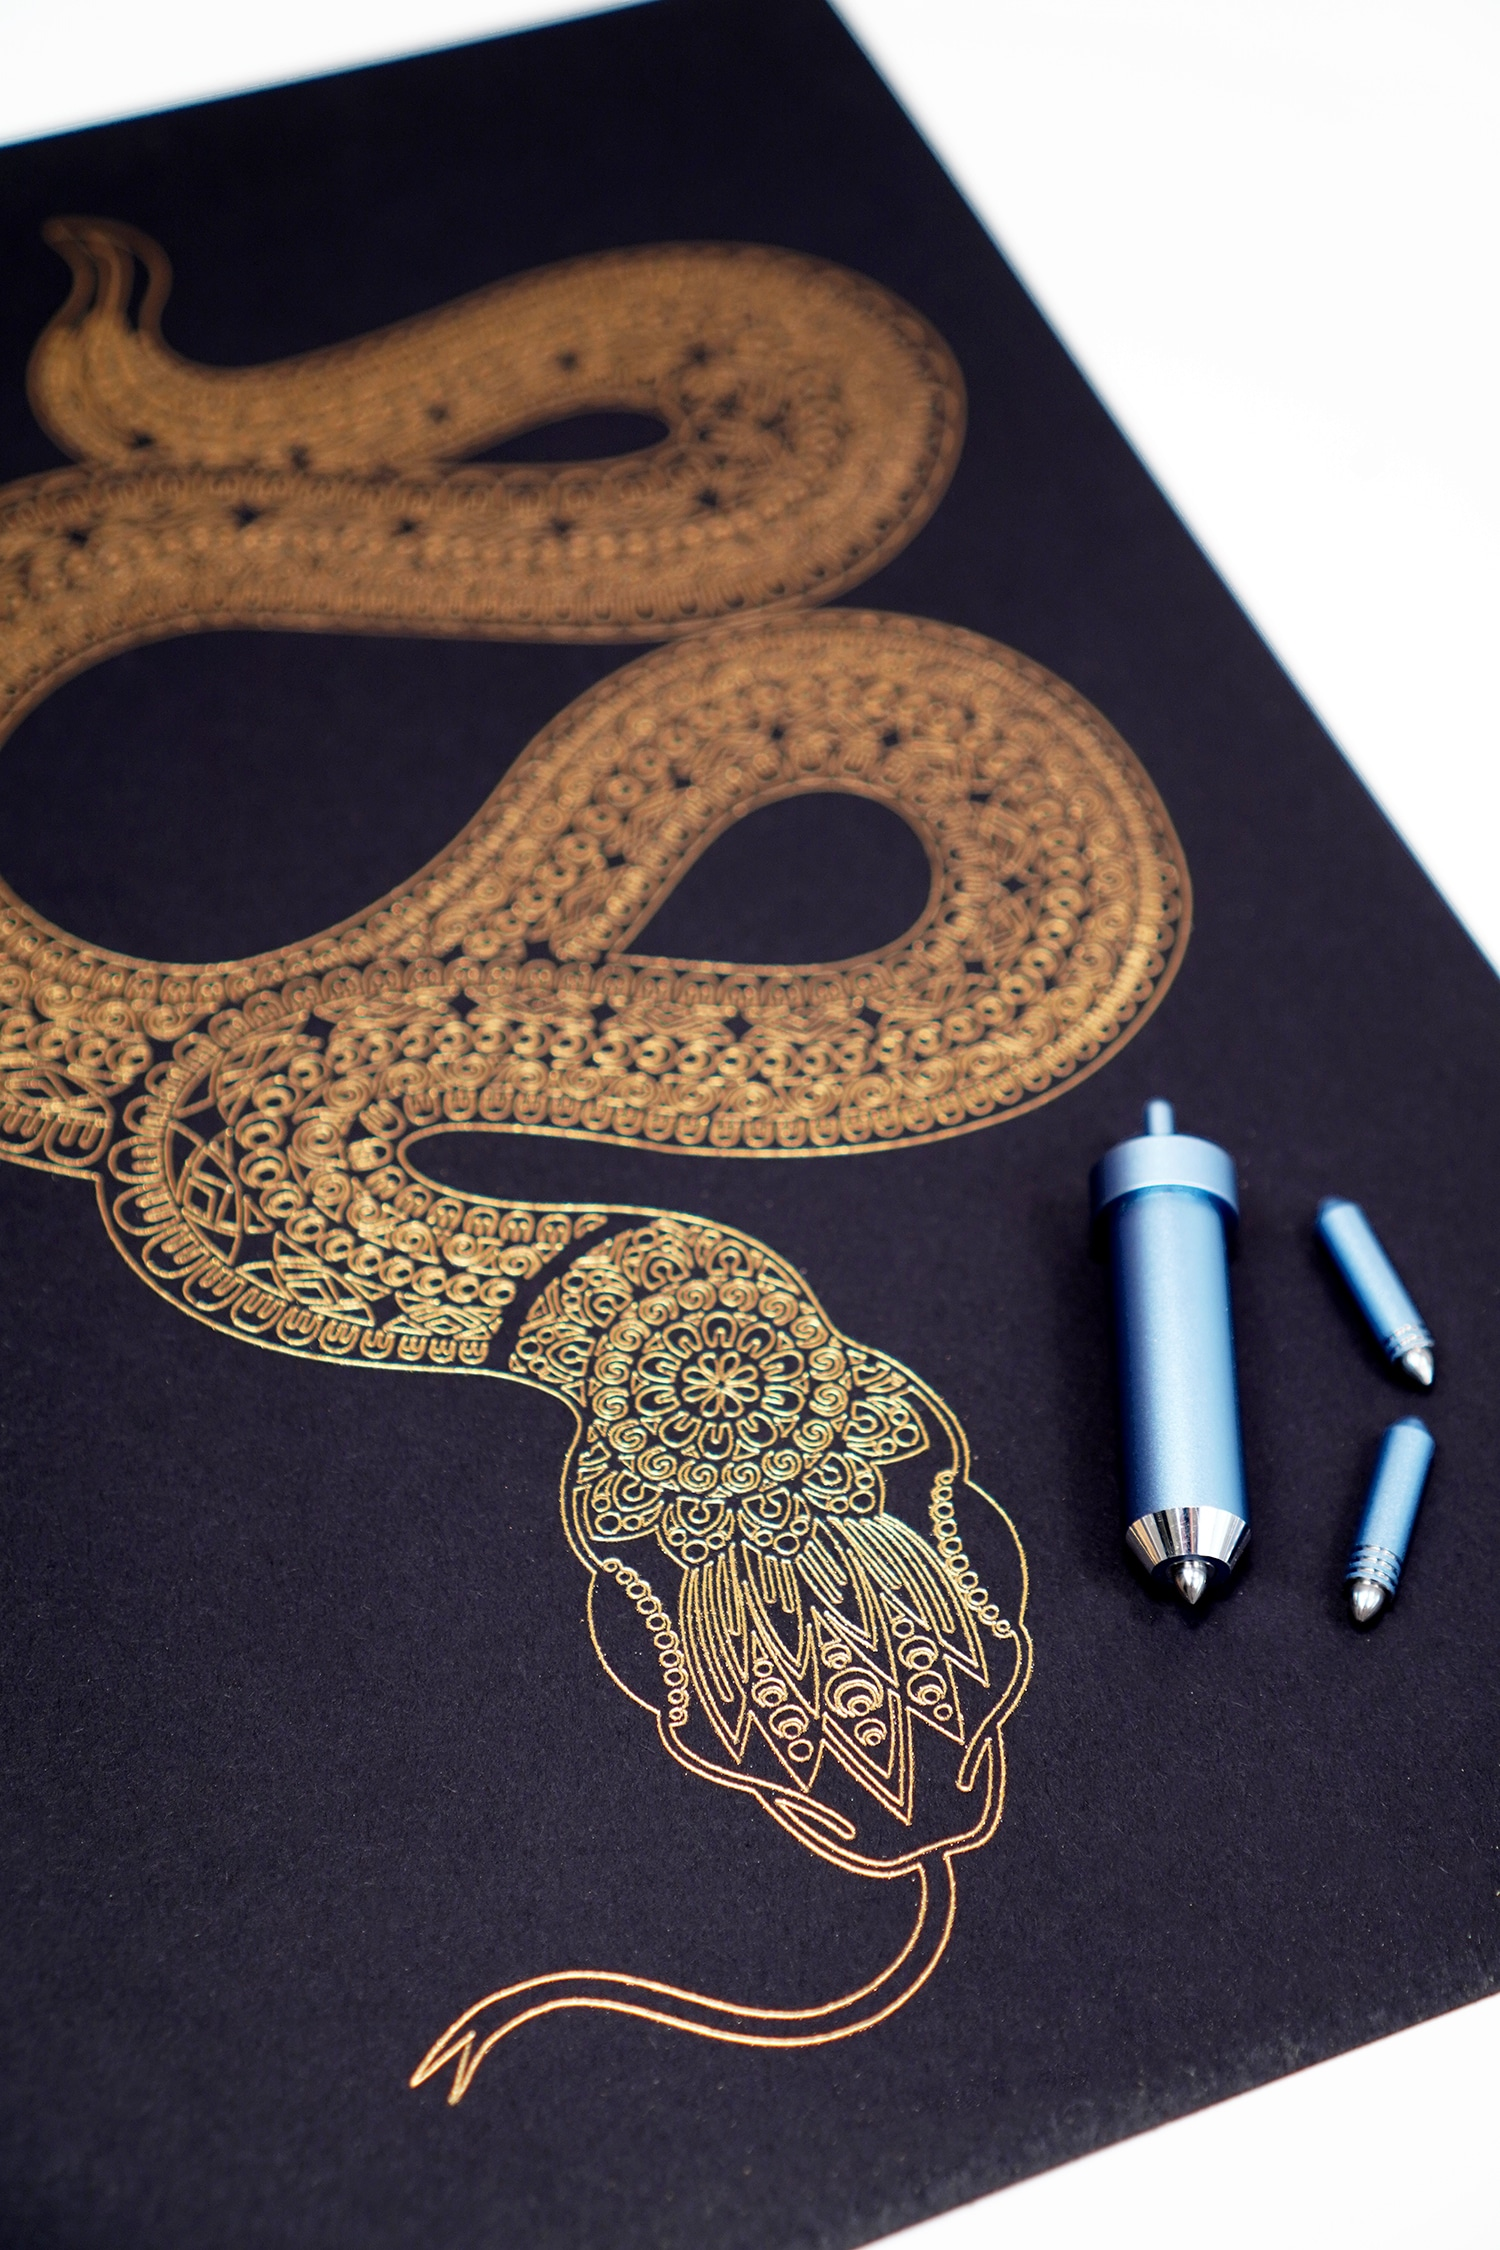 Close up of gold foil art print detail - snake with mandala designs and Cricut Foil Transfer Tool on black